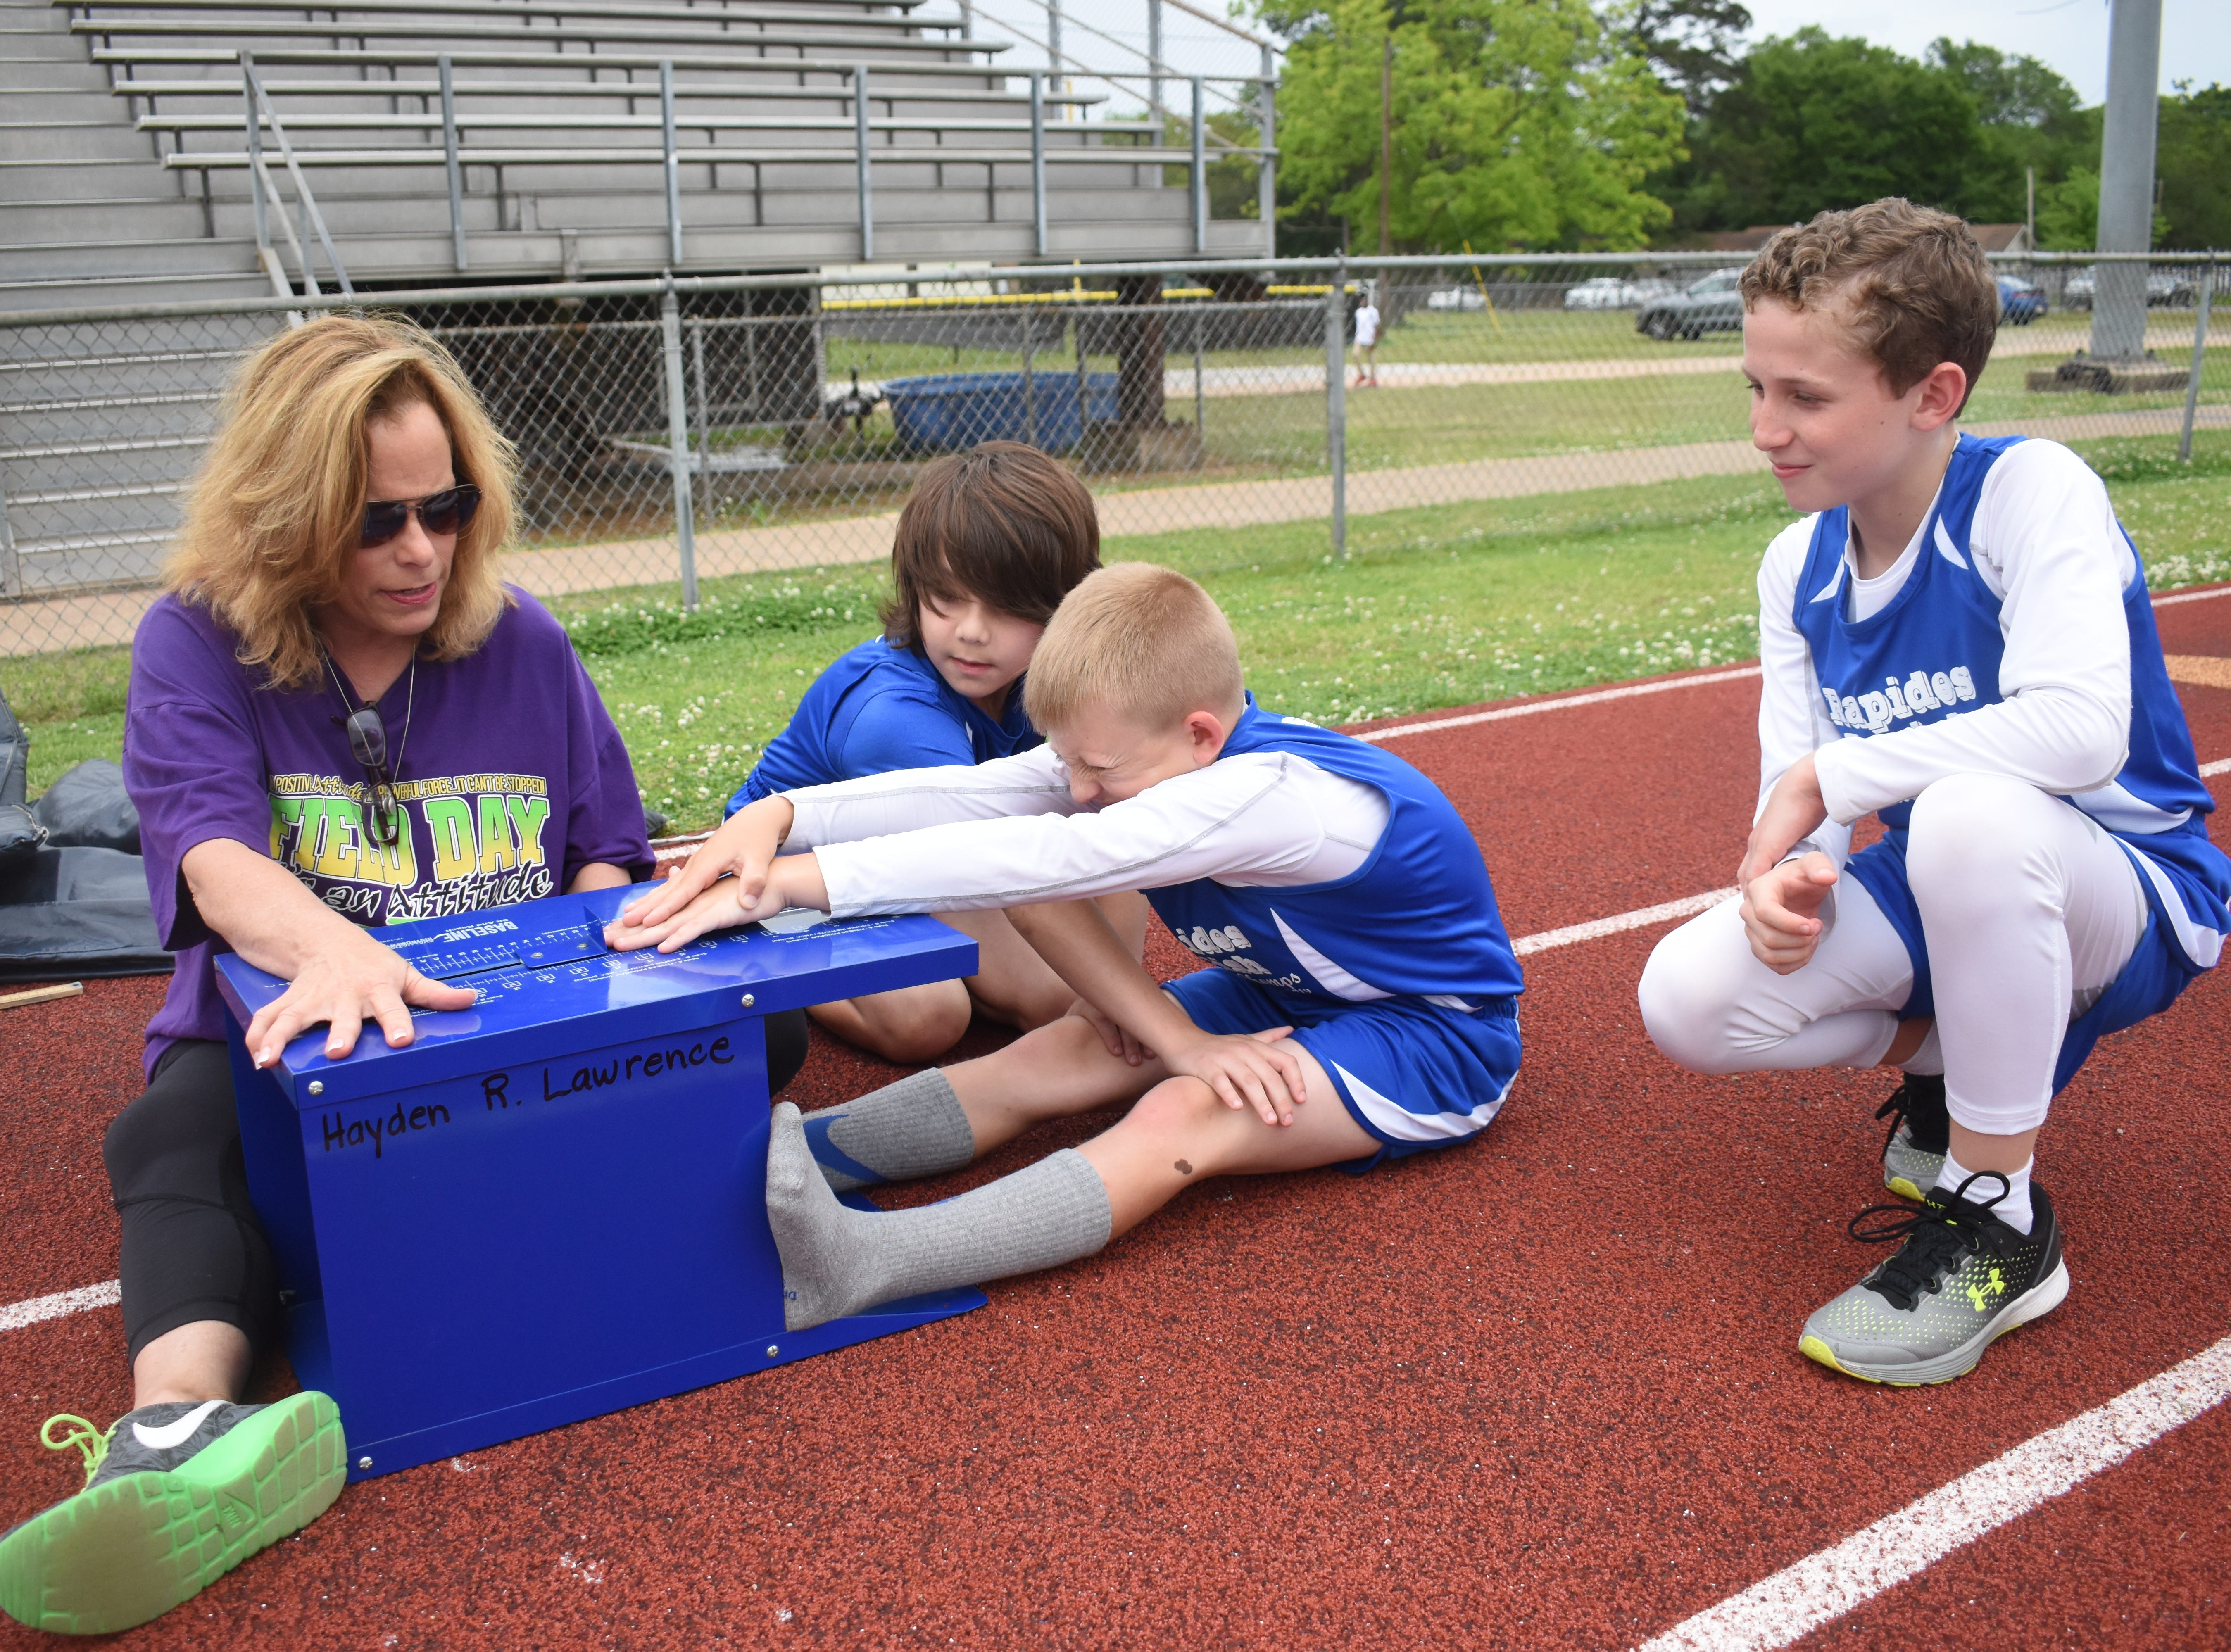 Margaret LaBorde, Rapides Parish Fitness team coach and coordinator (left) watches Jaxon Ross complete a sit and reach. Ross and Jacob Dean (right), both of Nachman Elementary School, and Bryce Warthen (back, second from left) of Hayden Lawrence Elementary School, are part the 2019 Rapides Parish Fitness Team. They and three other Rapides Parish elementary school students will compete in the 2019 State Championship Fitness Meet to be held Saturday, April 27, 2019 at Alexandria Senior High School. The meet is part of the Governor's Council on Fitness and Sports. Students from throughout Louisiana will compete in seven events: 50-yard dash, sit and reach, pull-ups,  shuttle run, curl-ups (sit-ups), standing long jump, and the 600-yard run. For the past three years, the Rapides Parish Fitness Team has placed first at the meet. Dean was the highest scoring boy last year and won the title of 2018 Mr. Fitness for the State of Louisiana. The meet will be from 10 a.m. to 2 p.m.